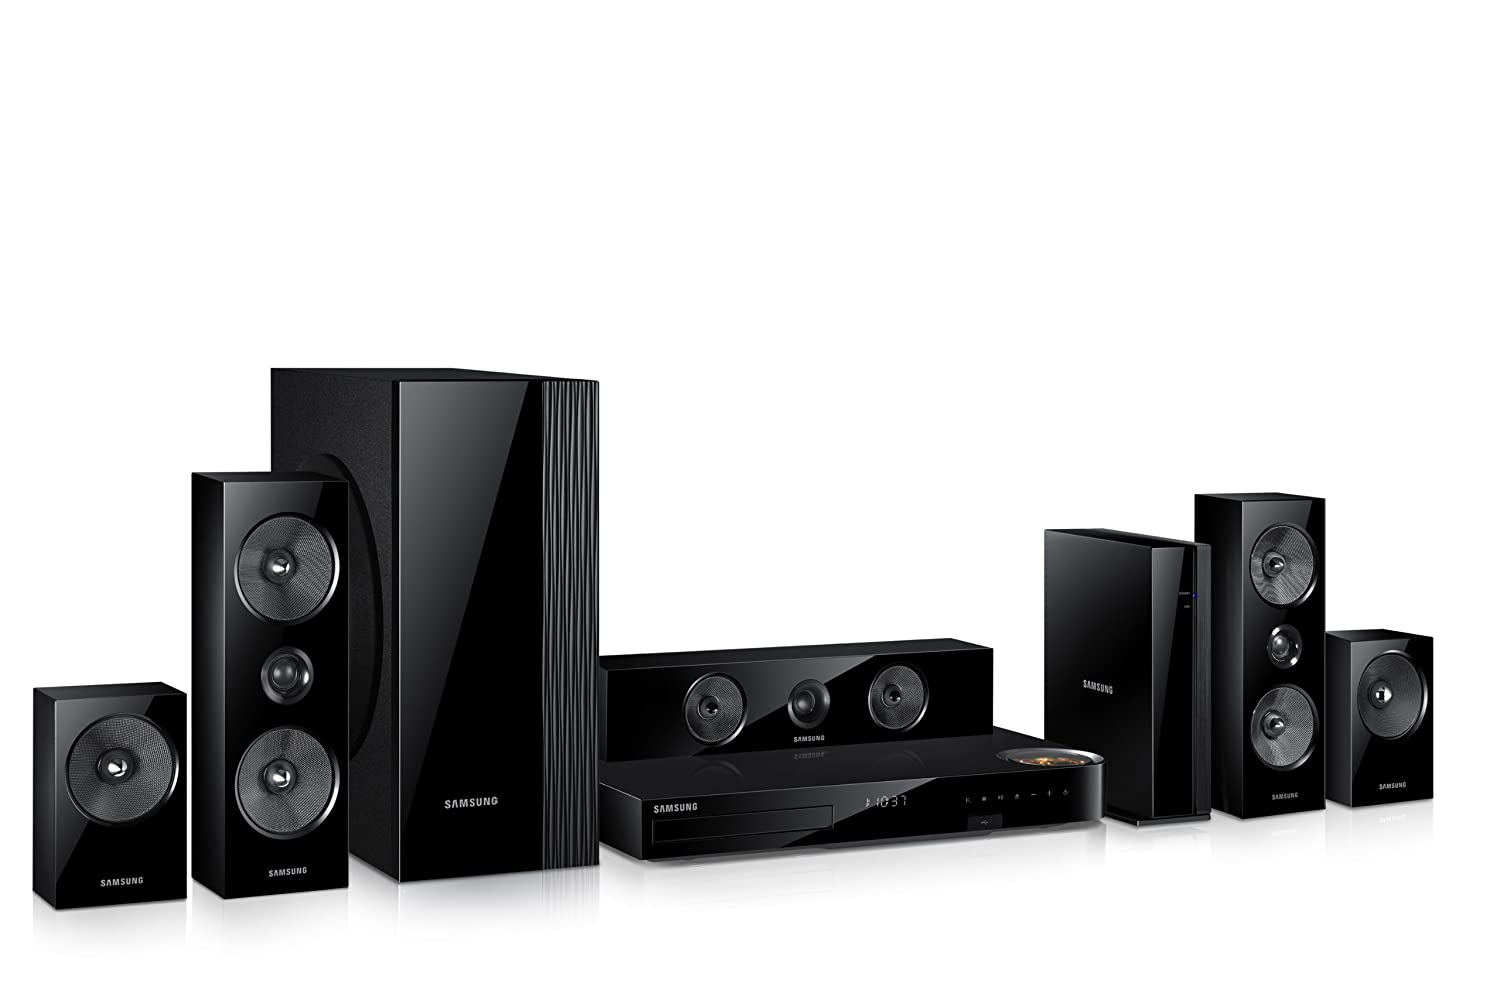 samsung home theater 2013. amazon.com: samsung ht-f6500w 5.1 channel 1000-watt 3d blu-ray home theater system: electronics 2013 s